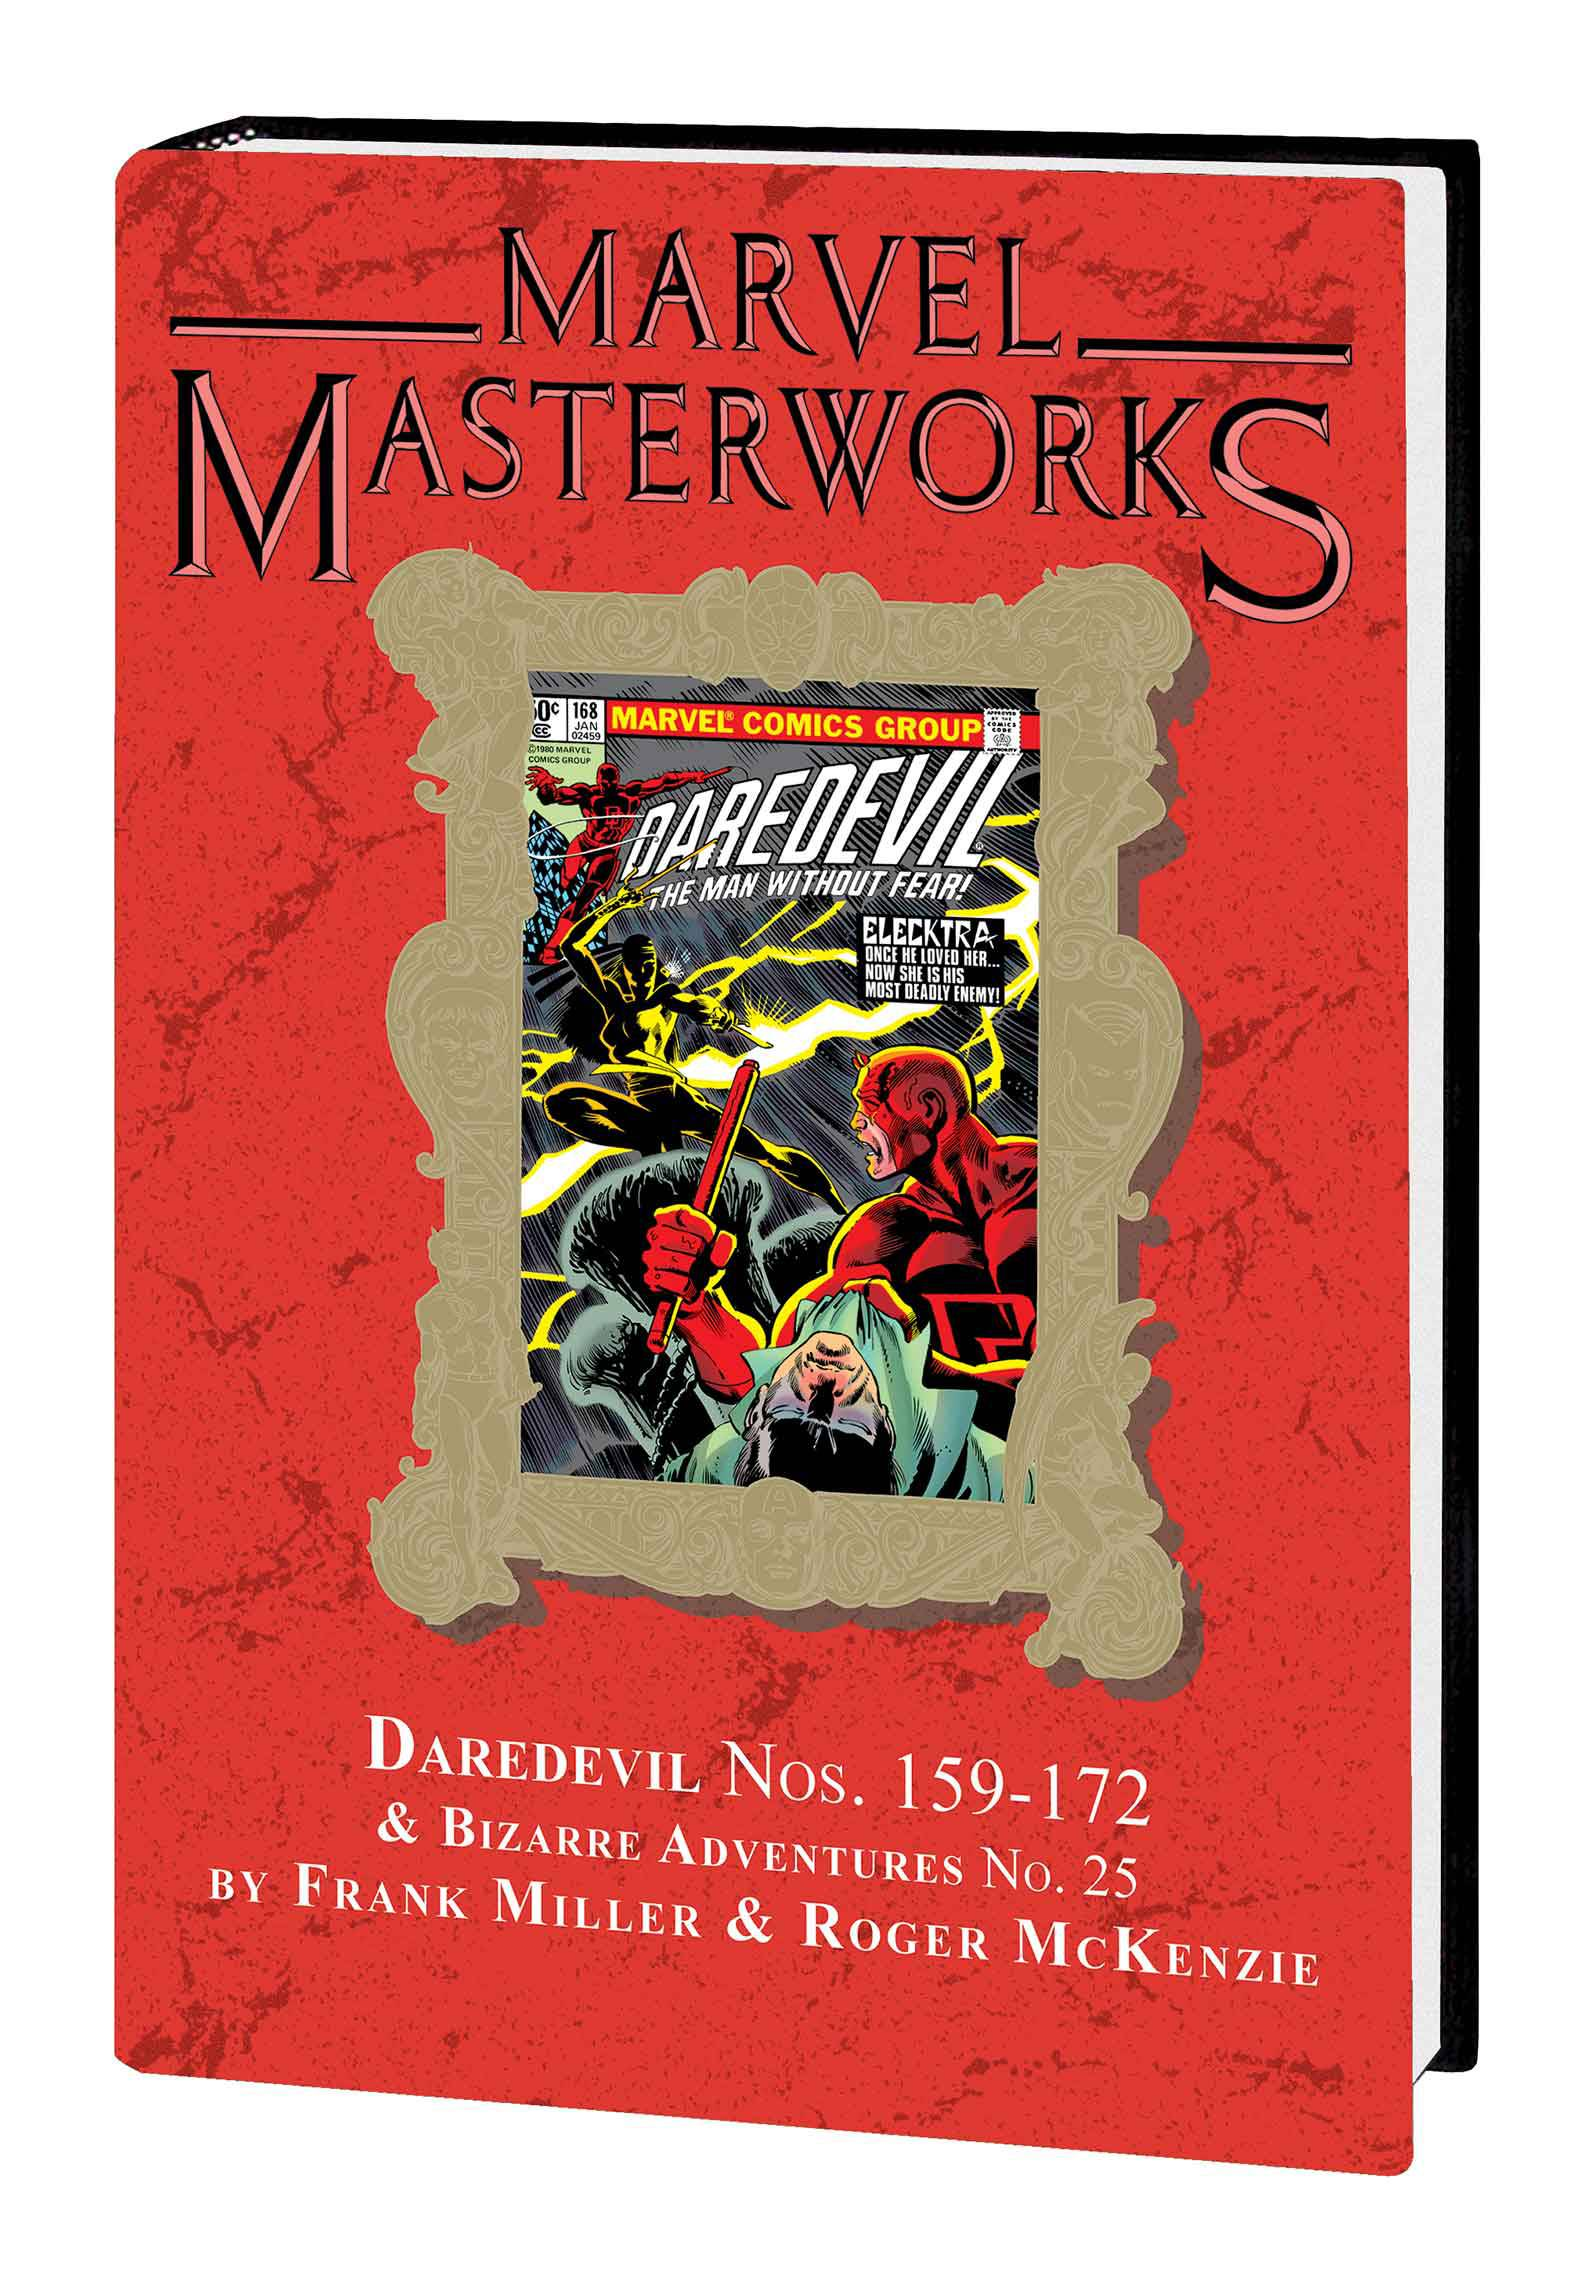 MMW DAREDEVIL HC VOL 15 DM VAR ED 307